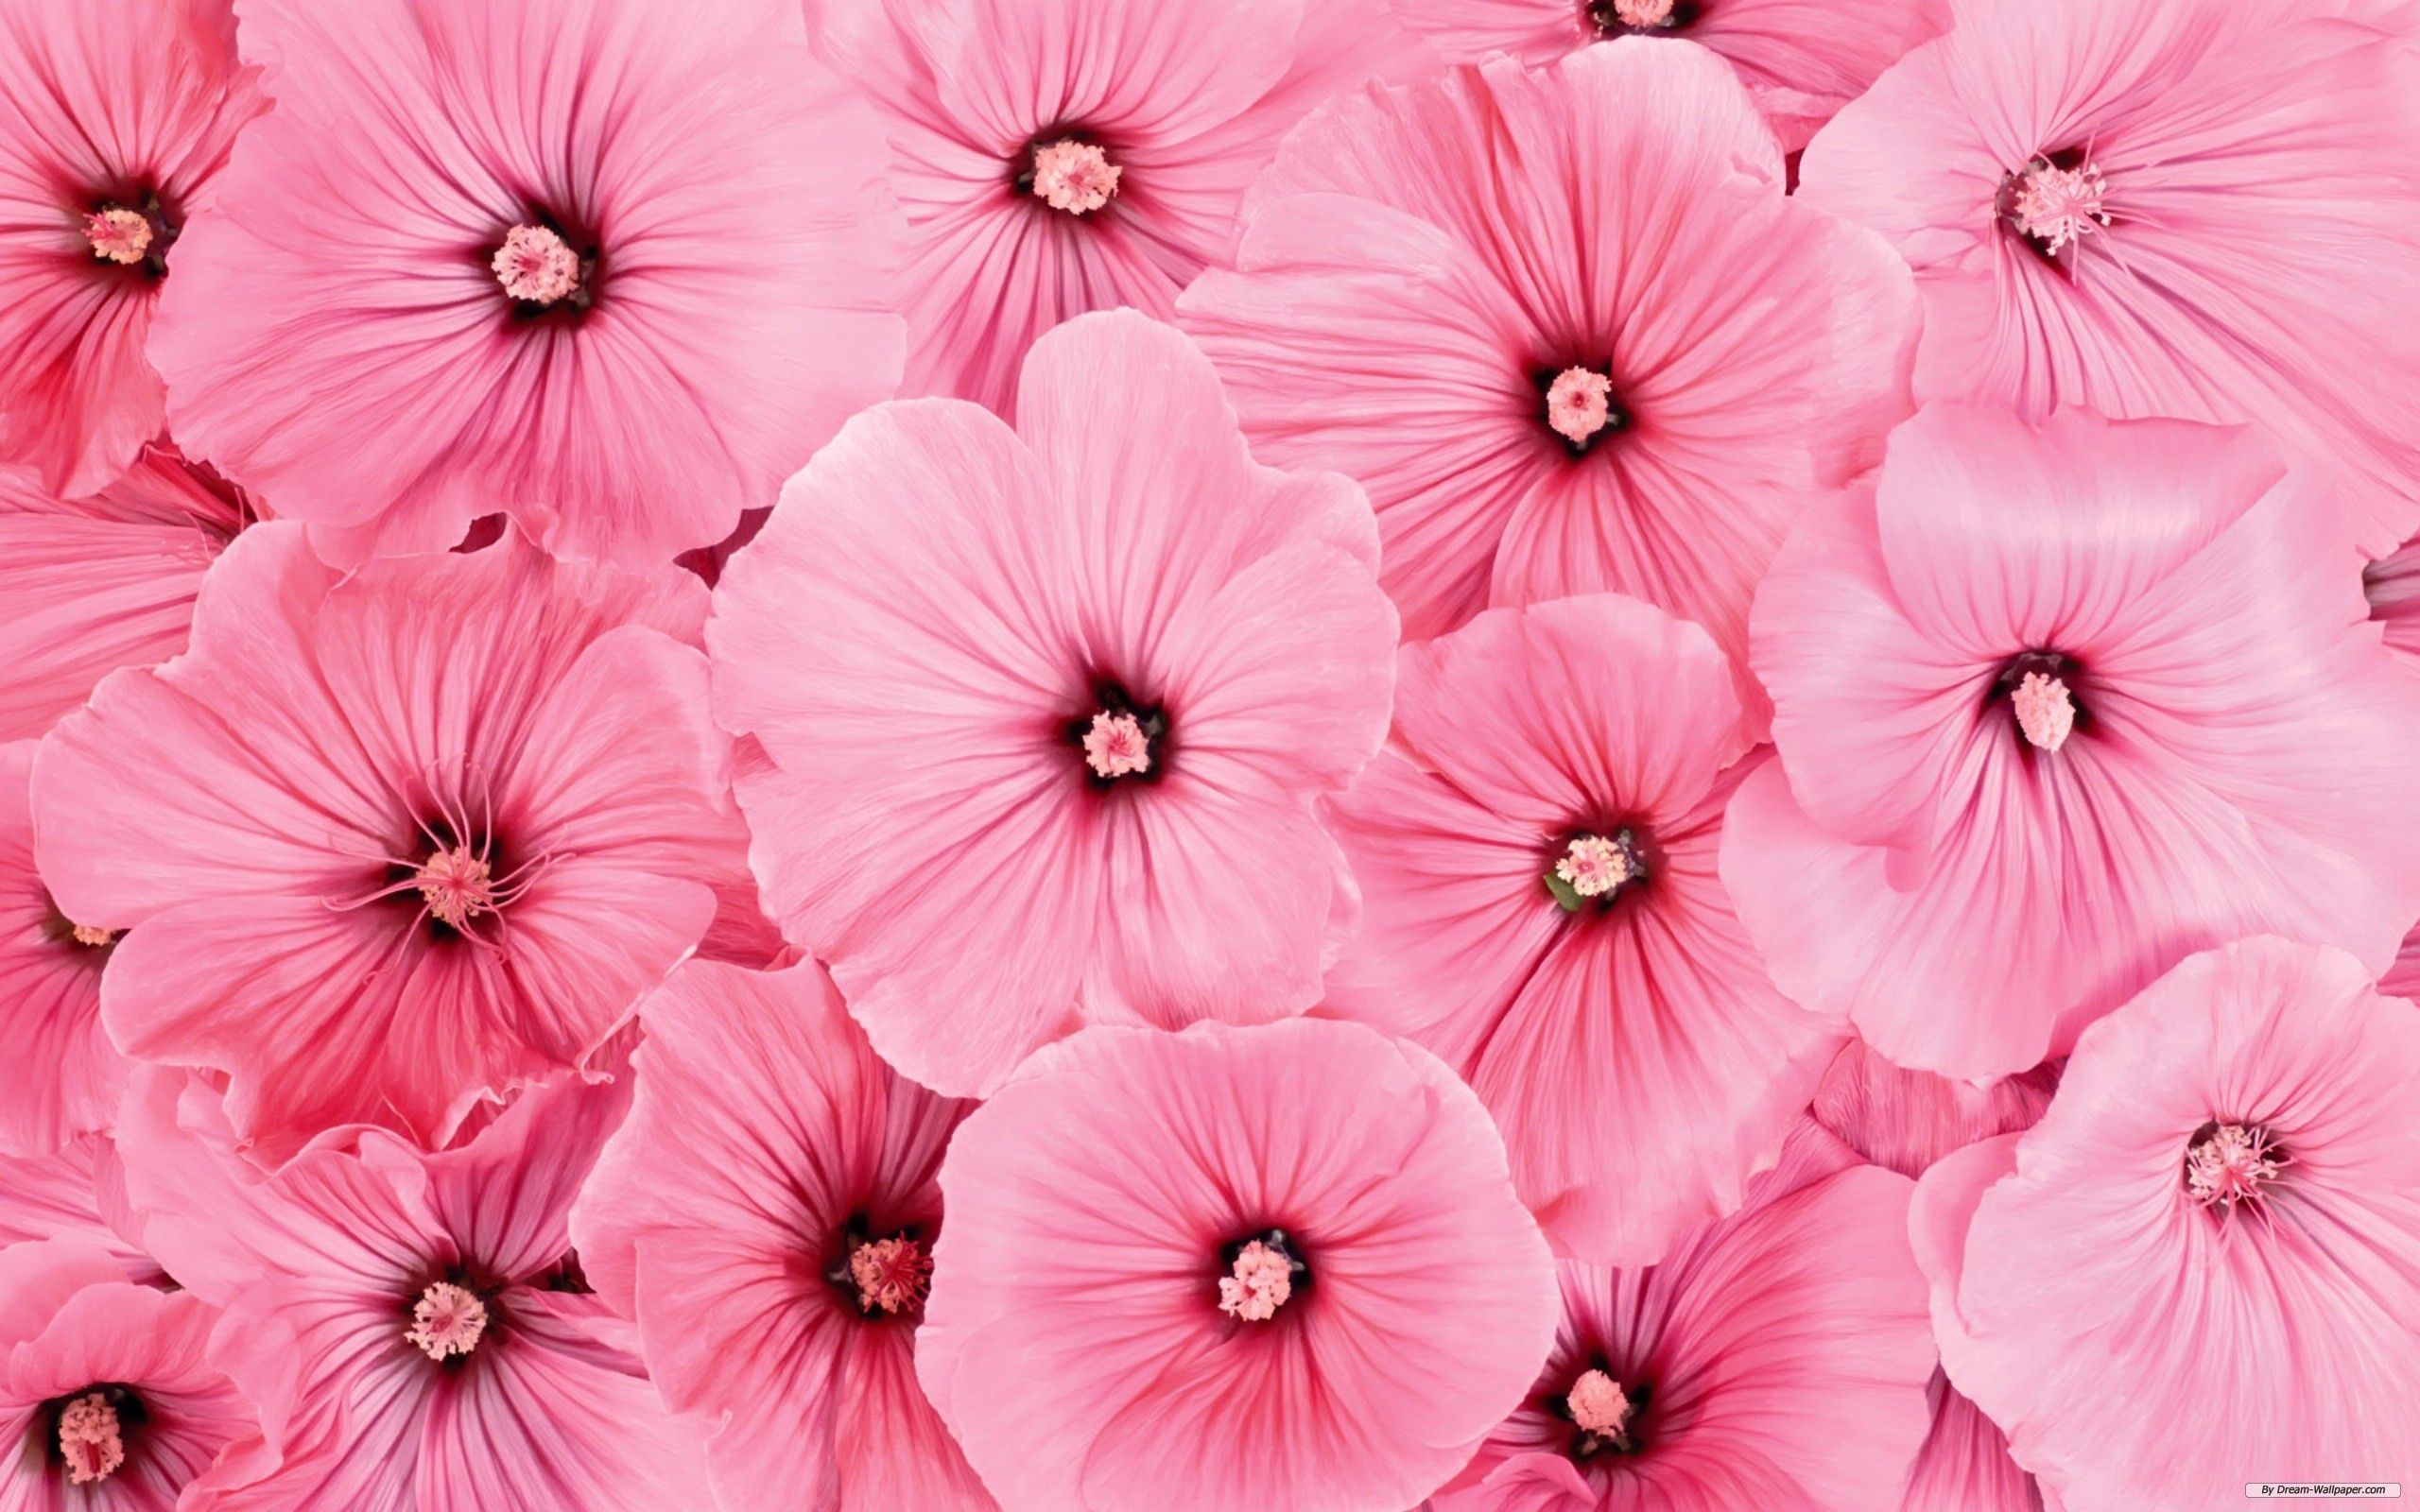 Pink Flowers Check Out More Exciting Hd Wallpapers Covers And Dps For Social Profiles